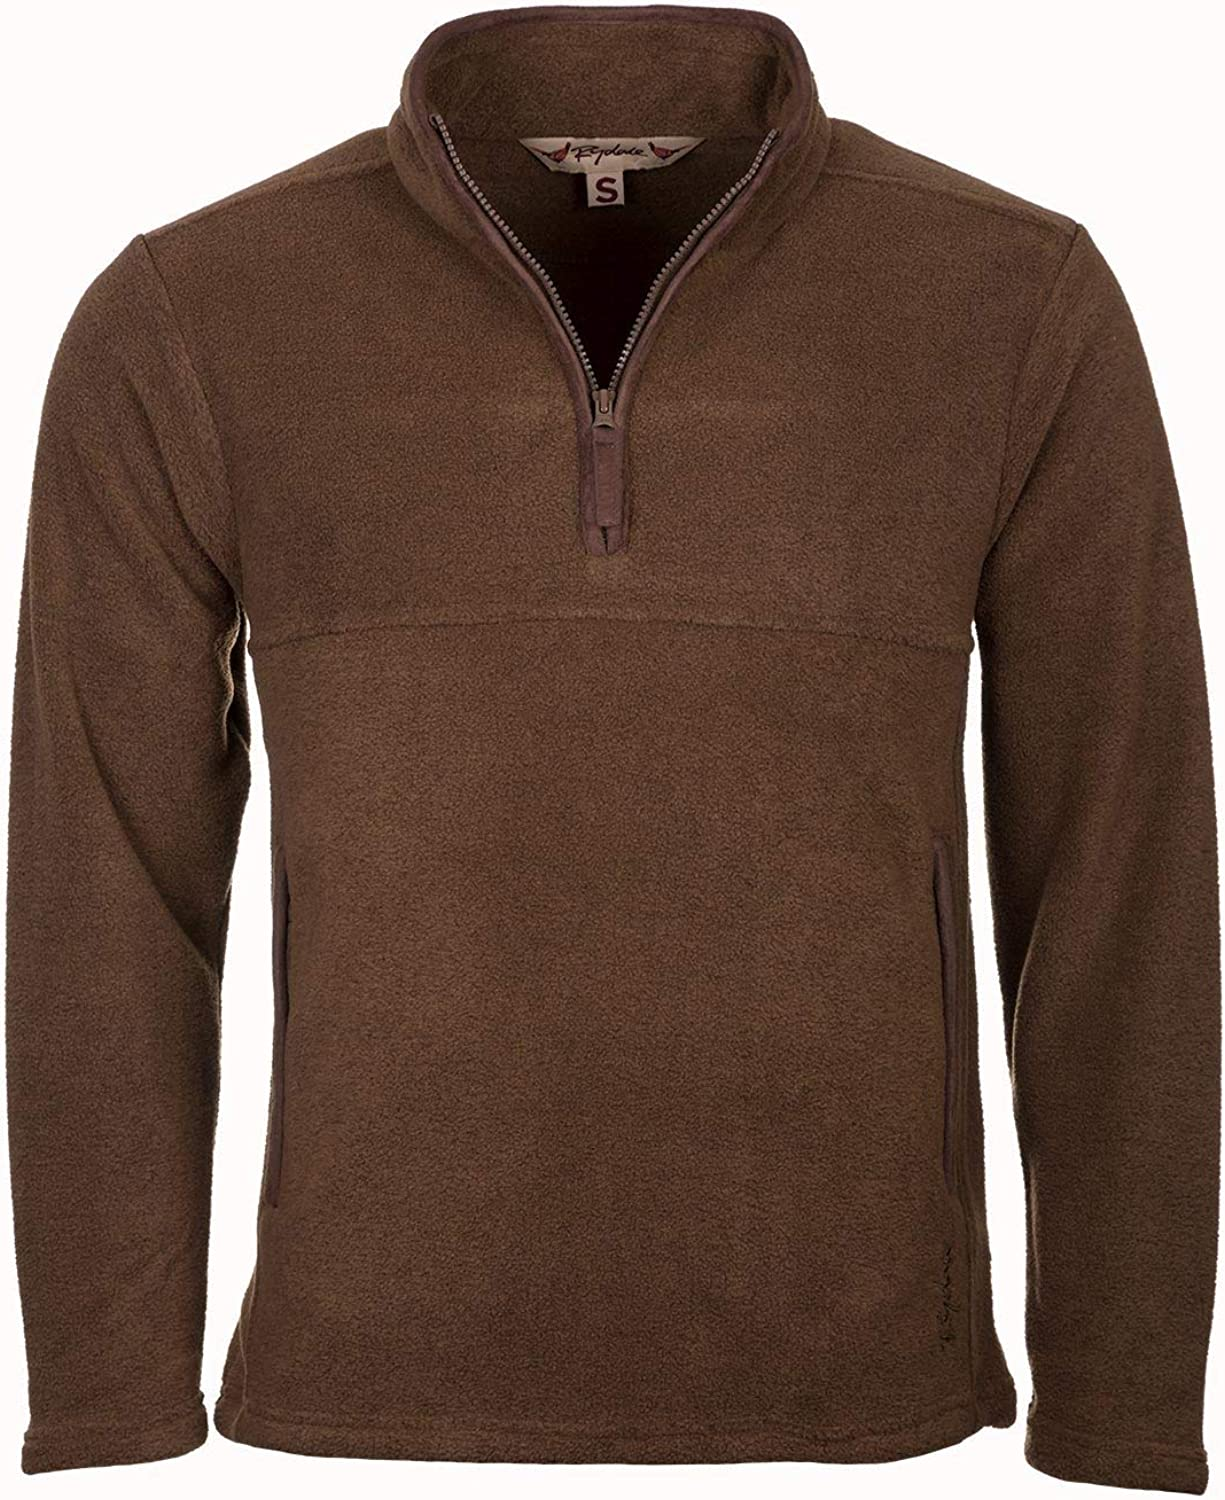 Rydale Mens Huggate Overhead Pullover Soft Fleece Half Zip Lightweight /& Casual Gents Country Jumper